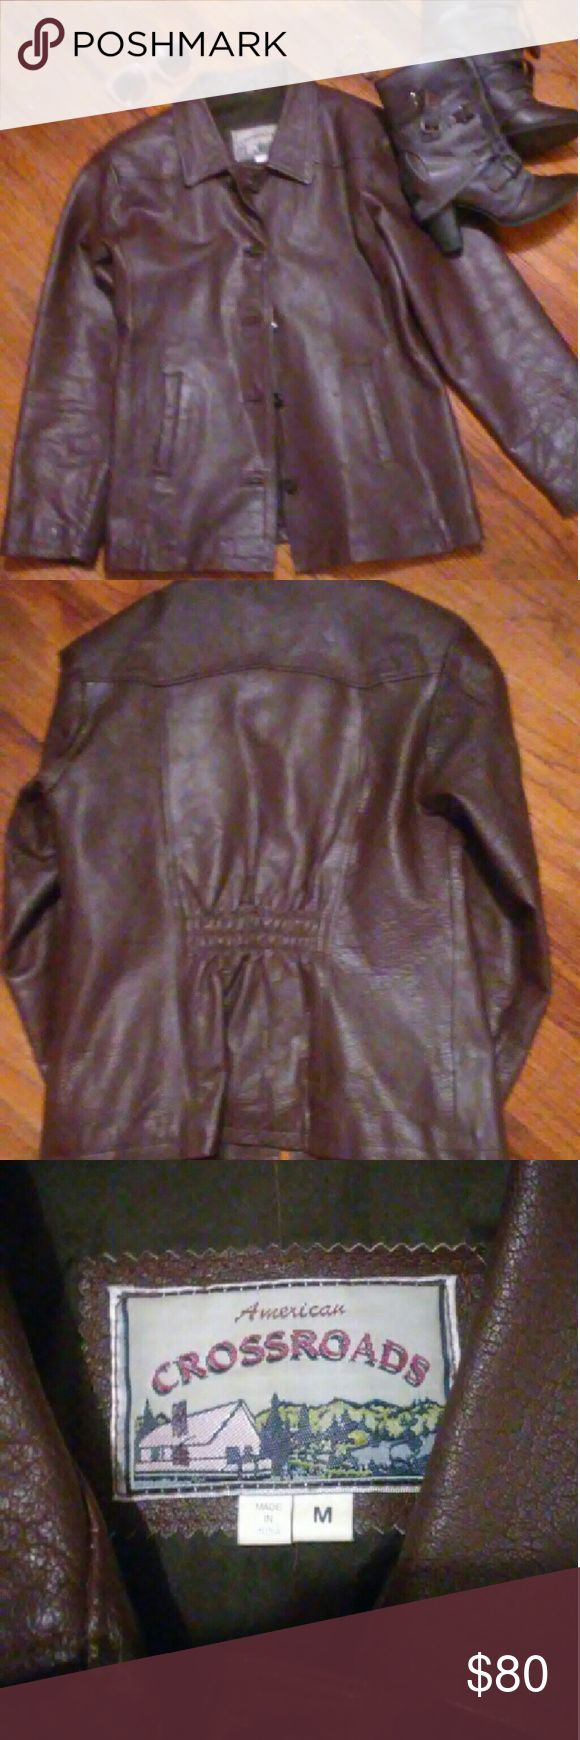 1000  ideas about Brown Leather Jackets on Pinterest | Leather